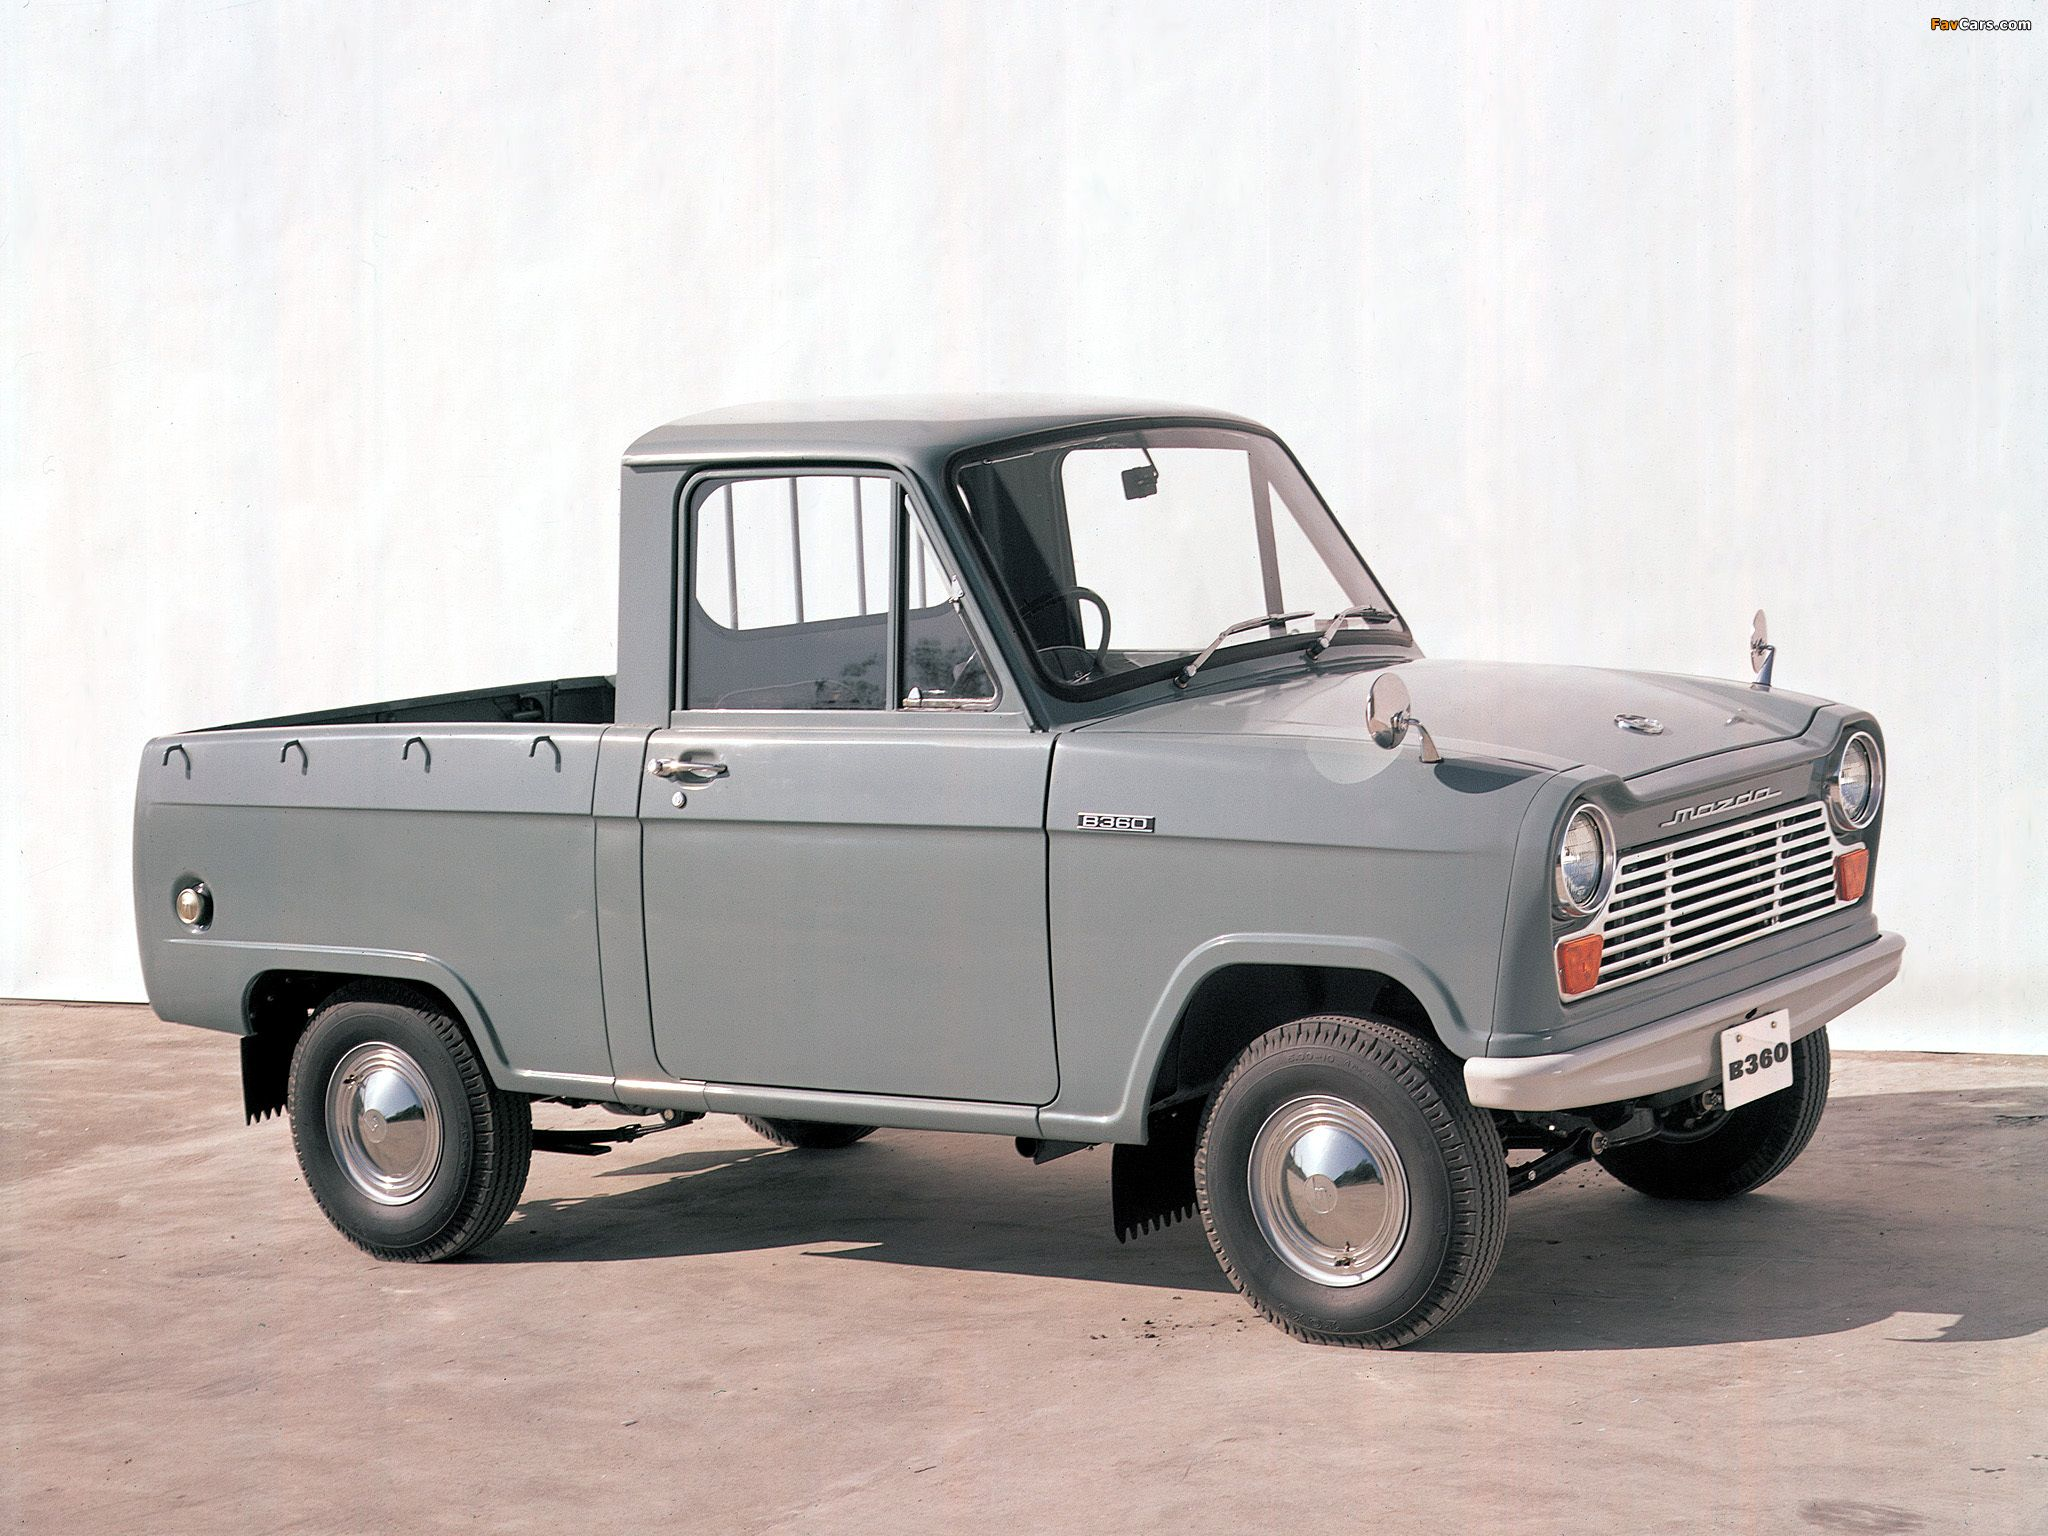 Mazda B360 mid-term (1963/Japan) | pickups and trucks ...